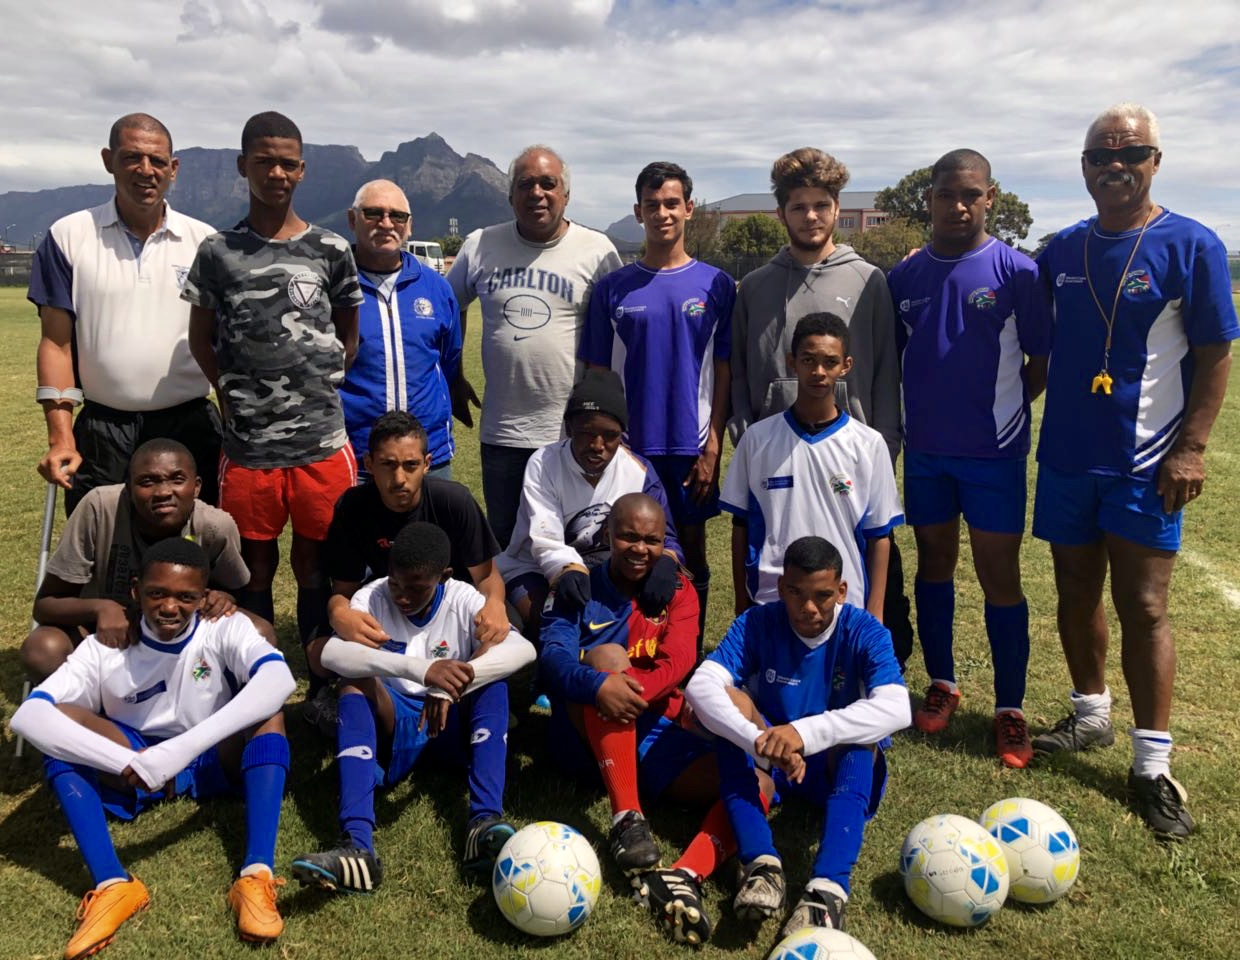 A dream come true for disabled soccer team